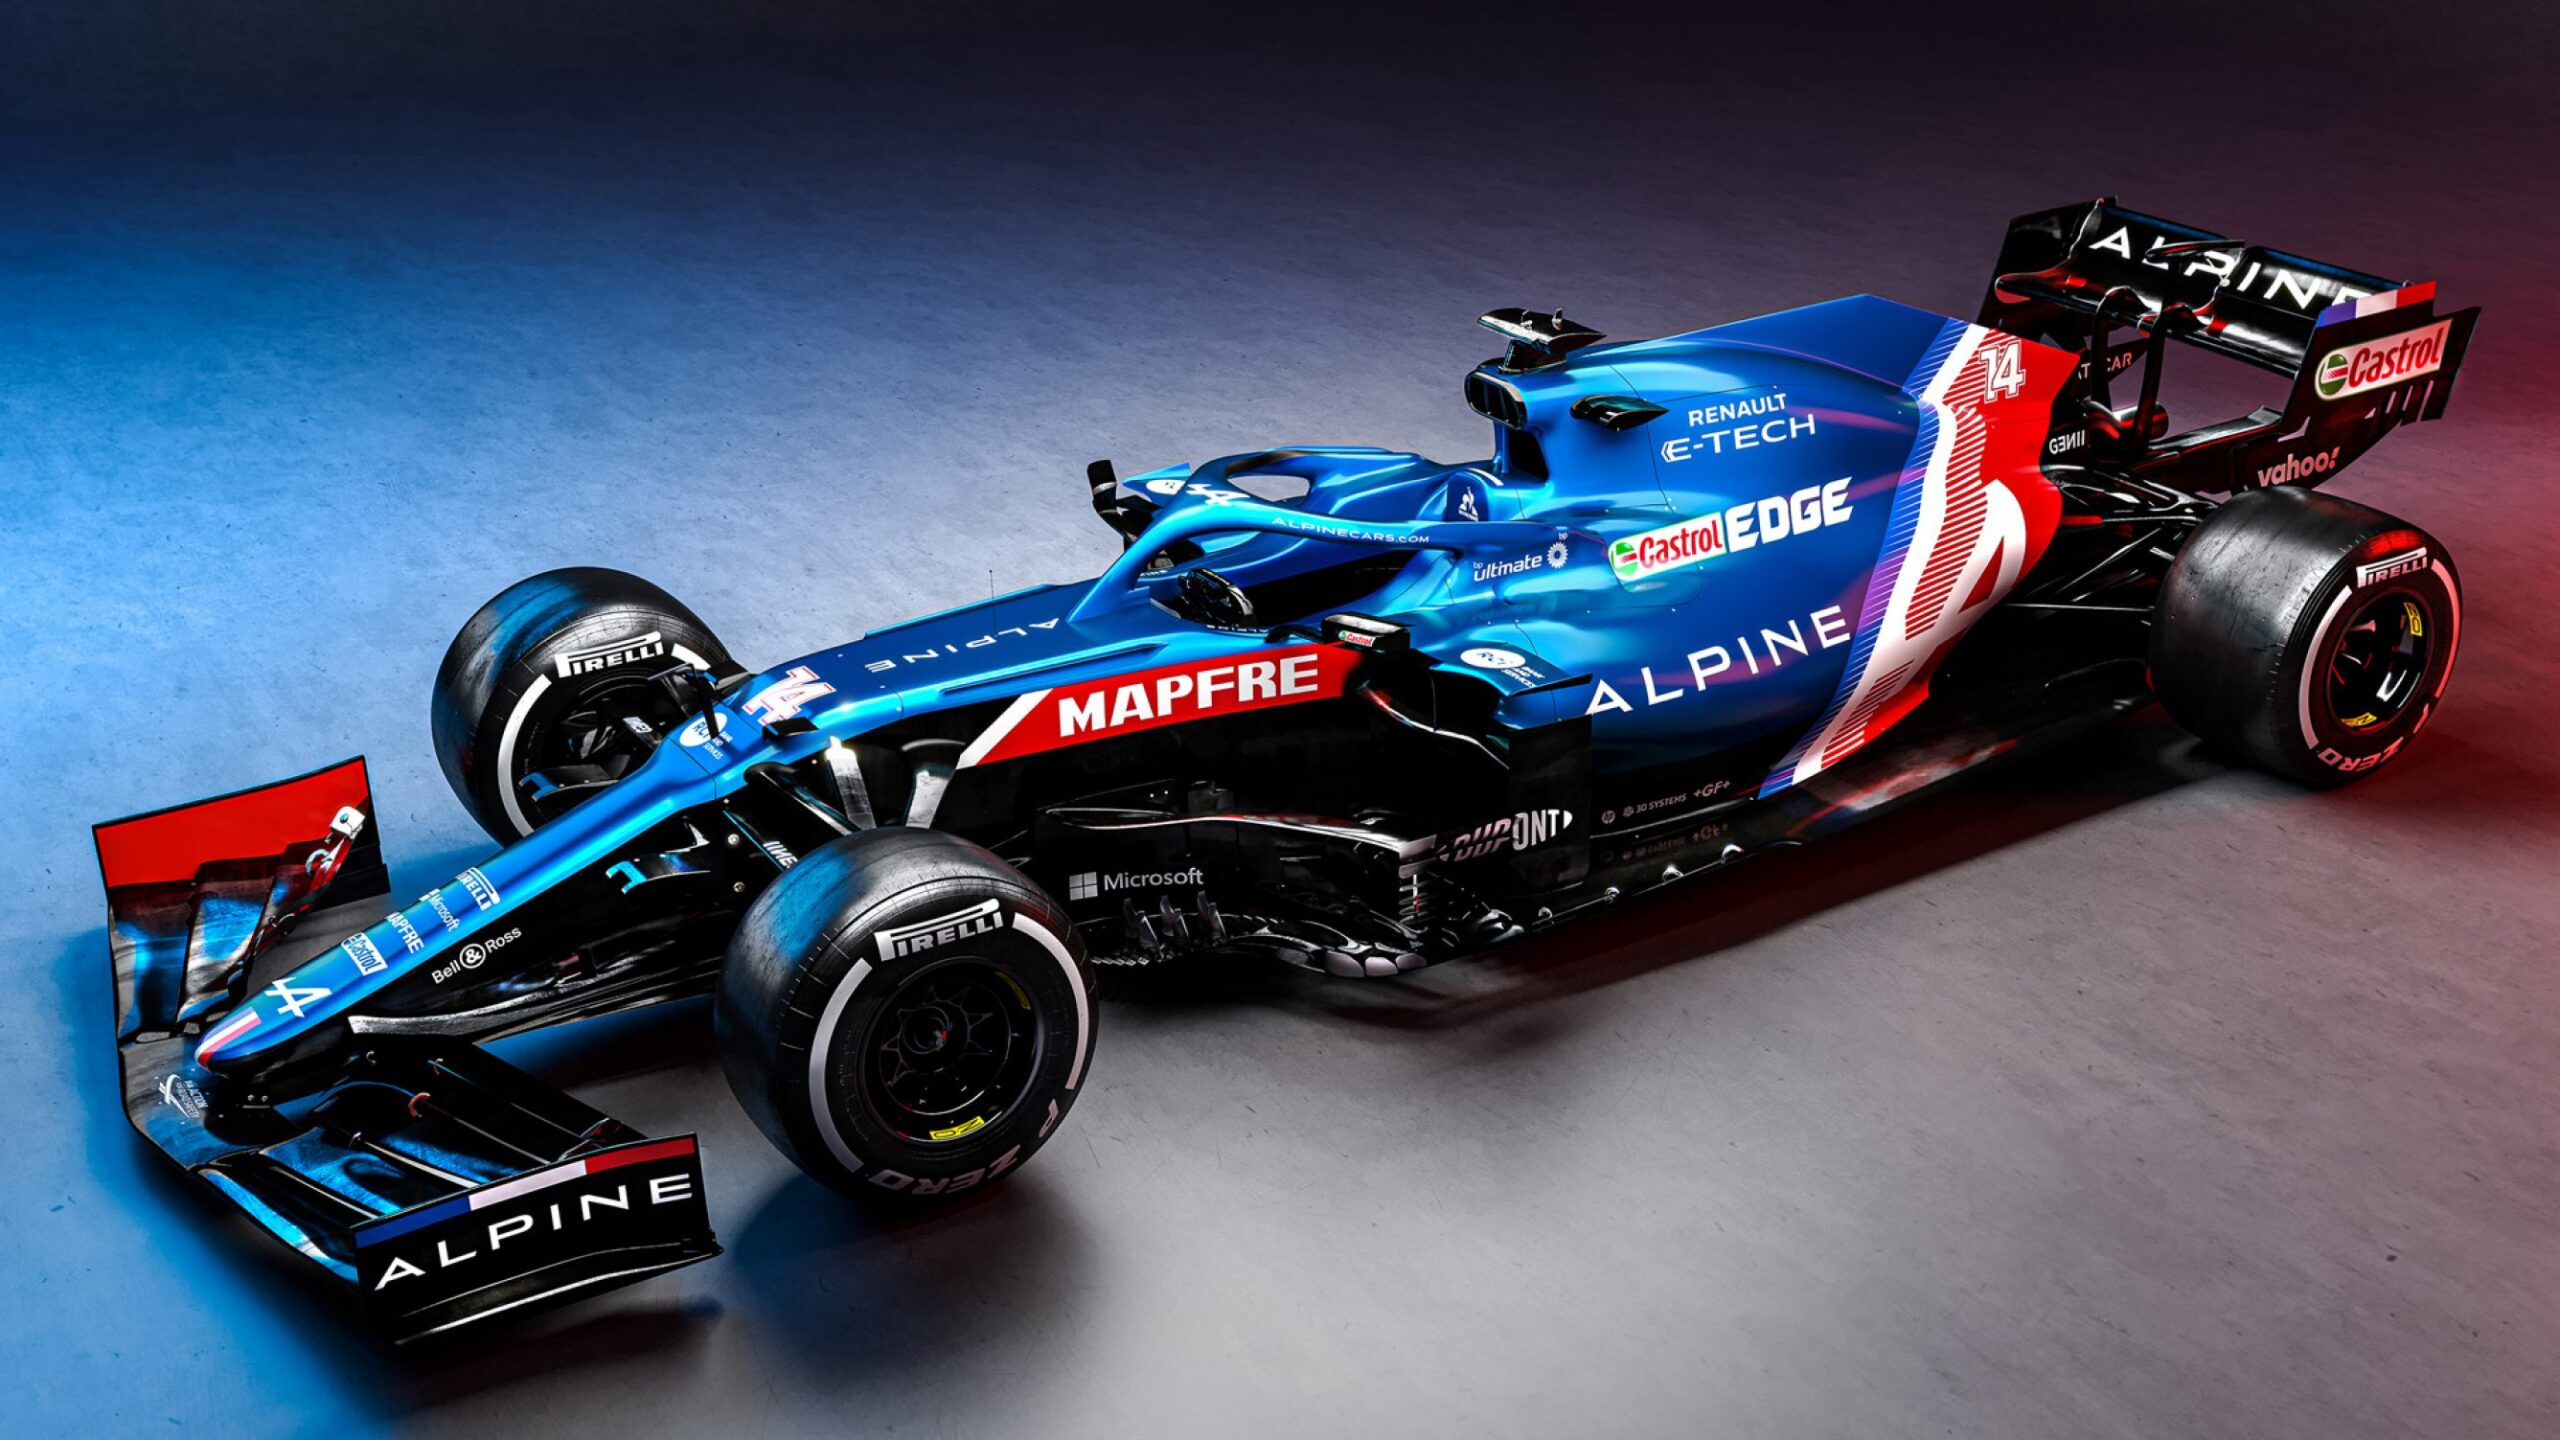 """Featured image for """"F1: Alpine reveal blue, white and red livery ahead of F1 season"""""""